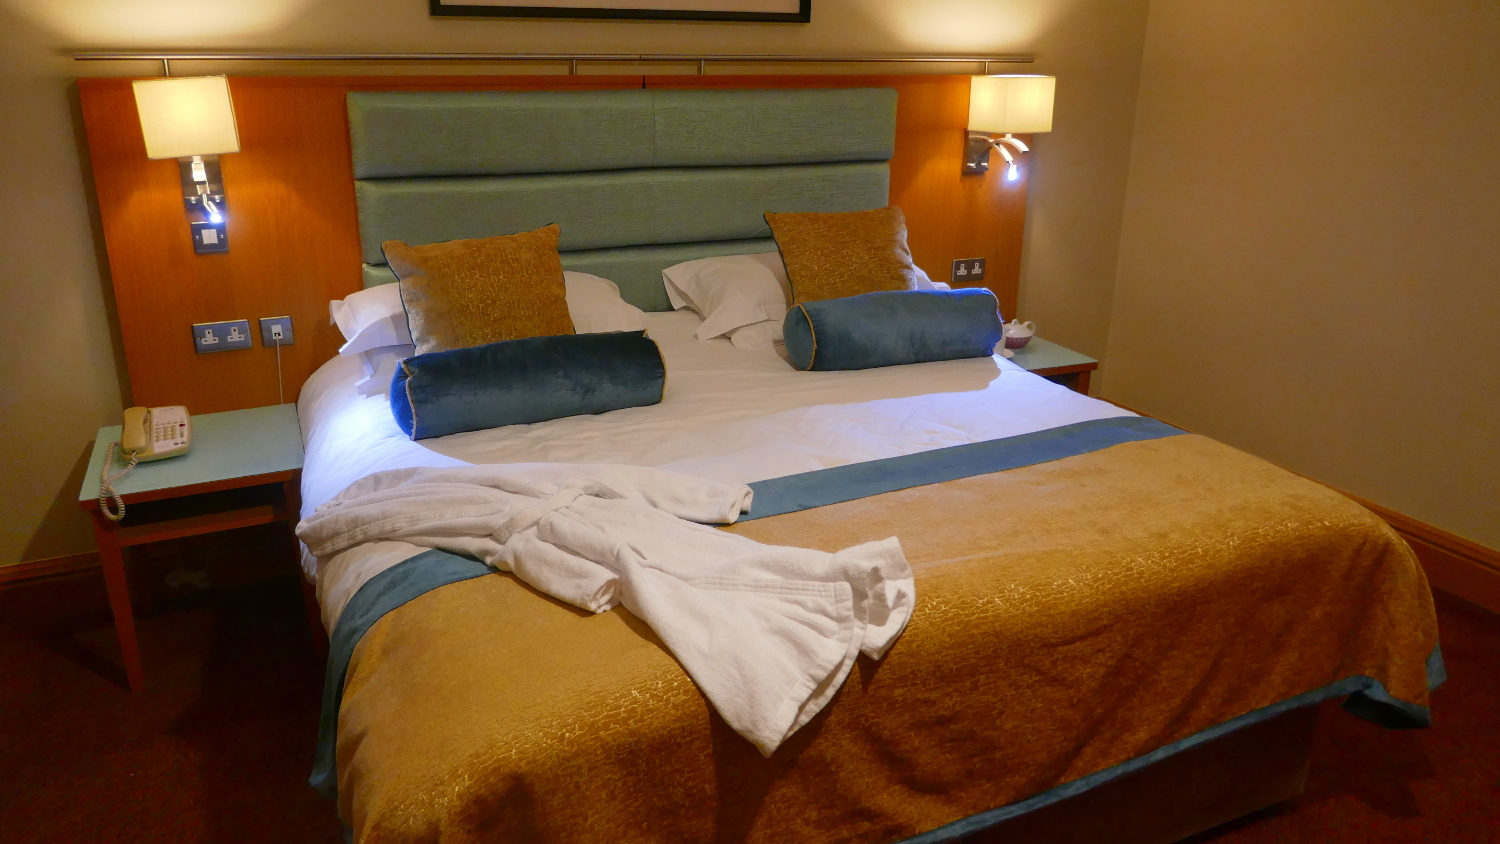 Radisson Blu Hotel & Spa, Limerick, Ireland for two nights and paid for with points. Great work area, robes, slippers, gourmet tea set up, and a comfortable bed! Total savings: $230